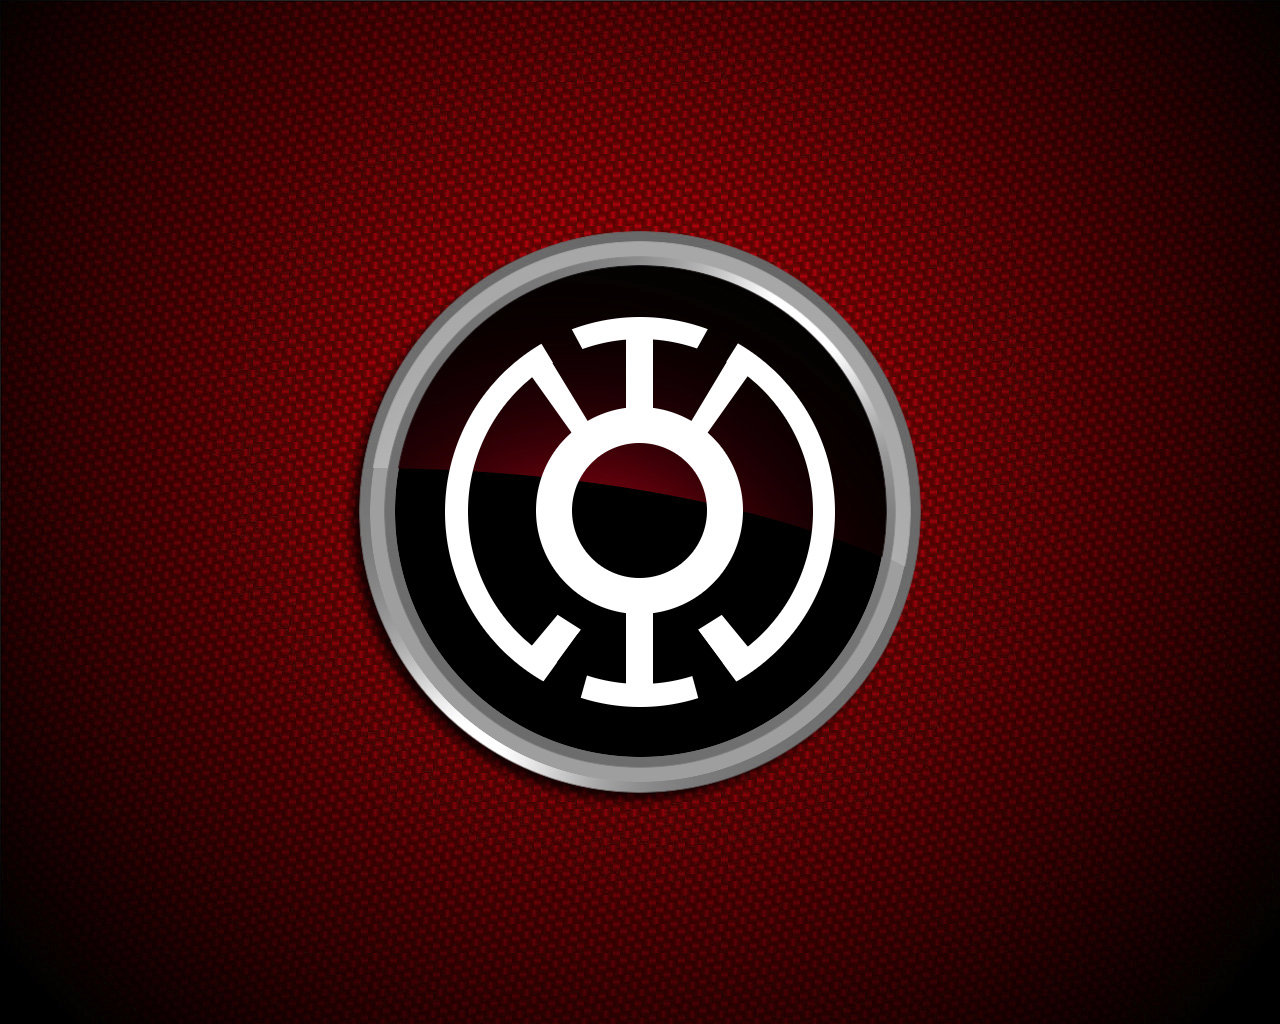 Download hd 1280x1024 Red Lantern Corps computer wallpaper ID:25986 for free